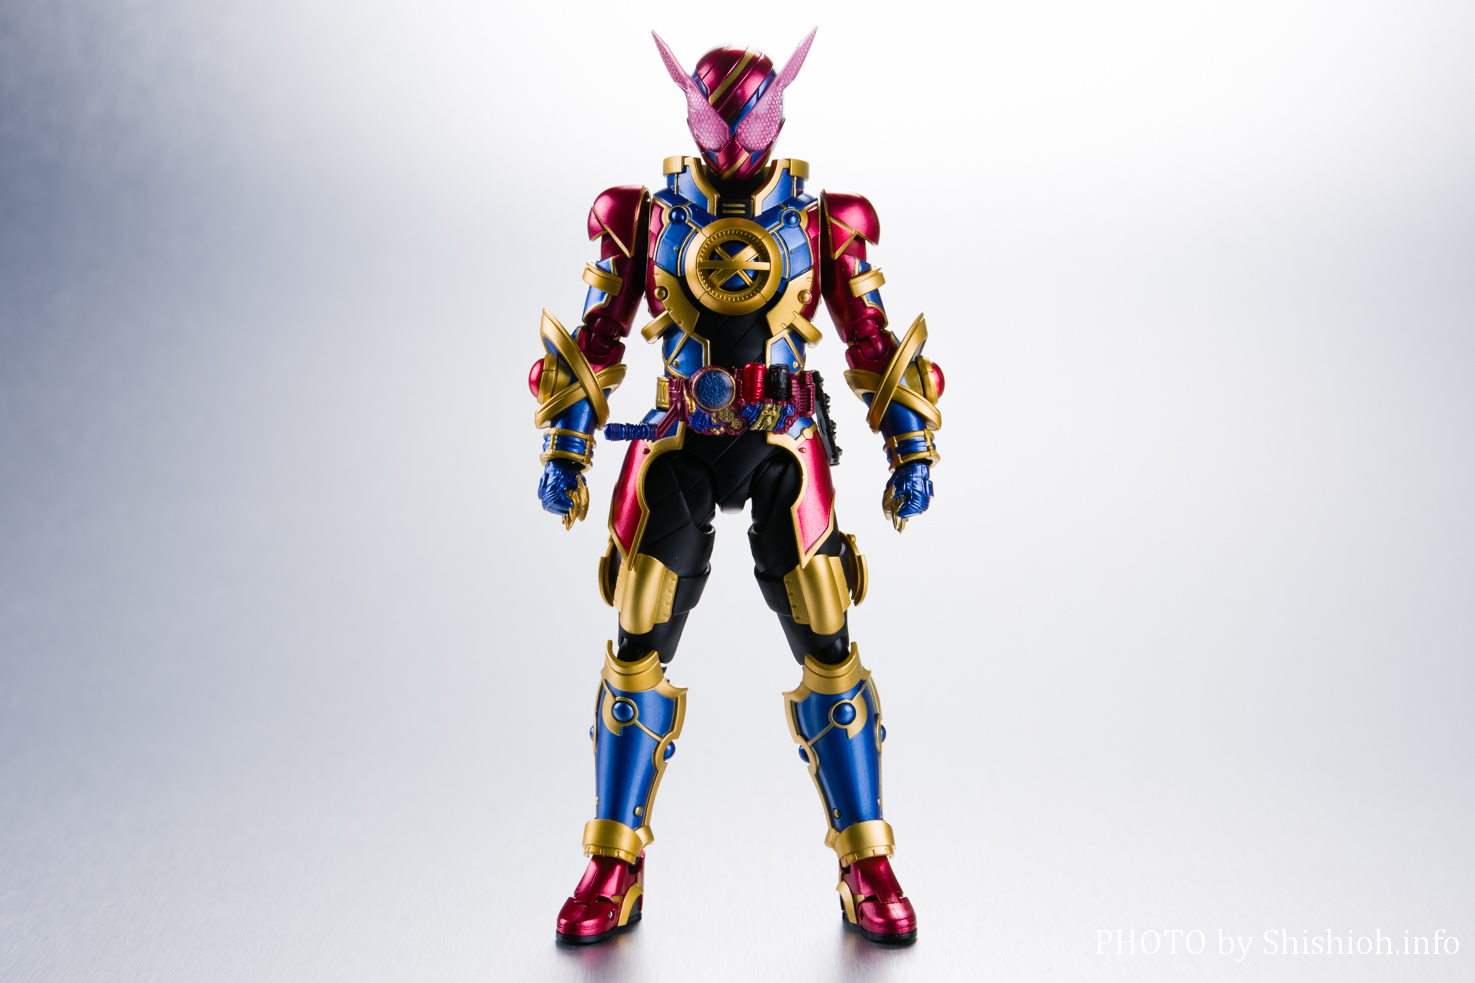 S.H.Figuarts 仮面ライダーエボル(フェーズ1.2.3.セット)